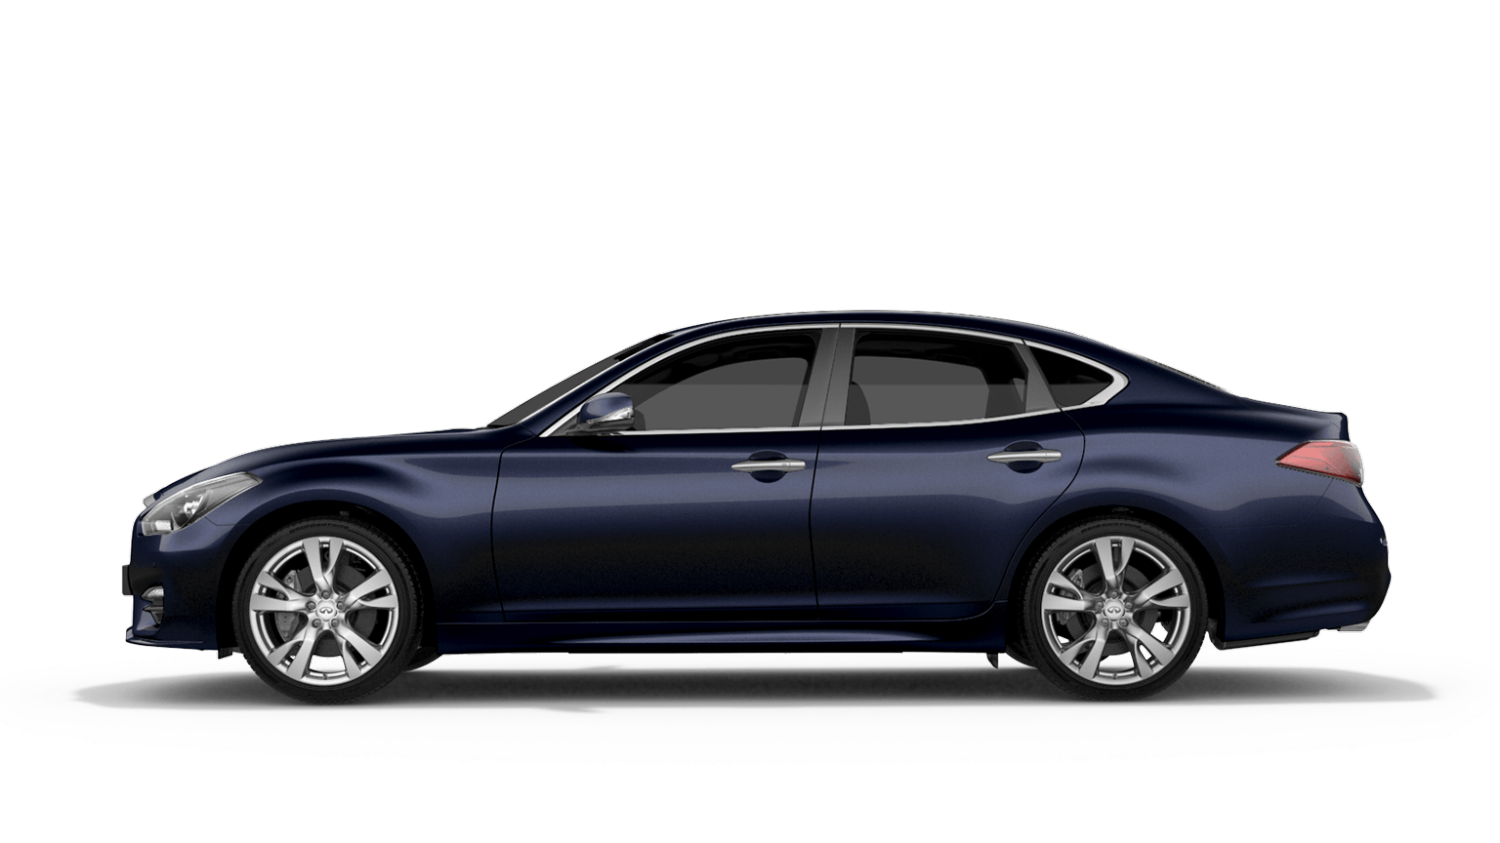 Infiniti fr nouveaux v hicules berlines coup s crossovers et suv